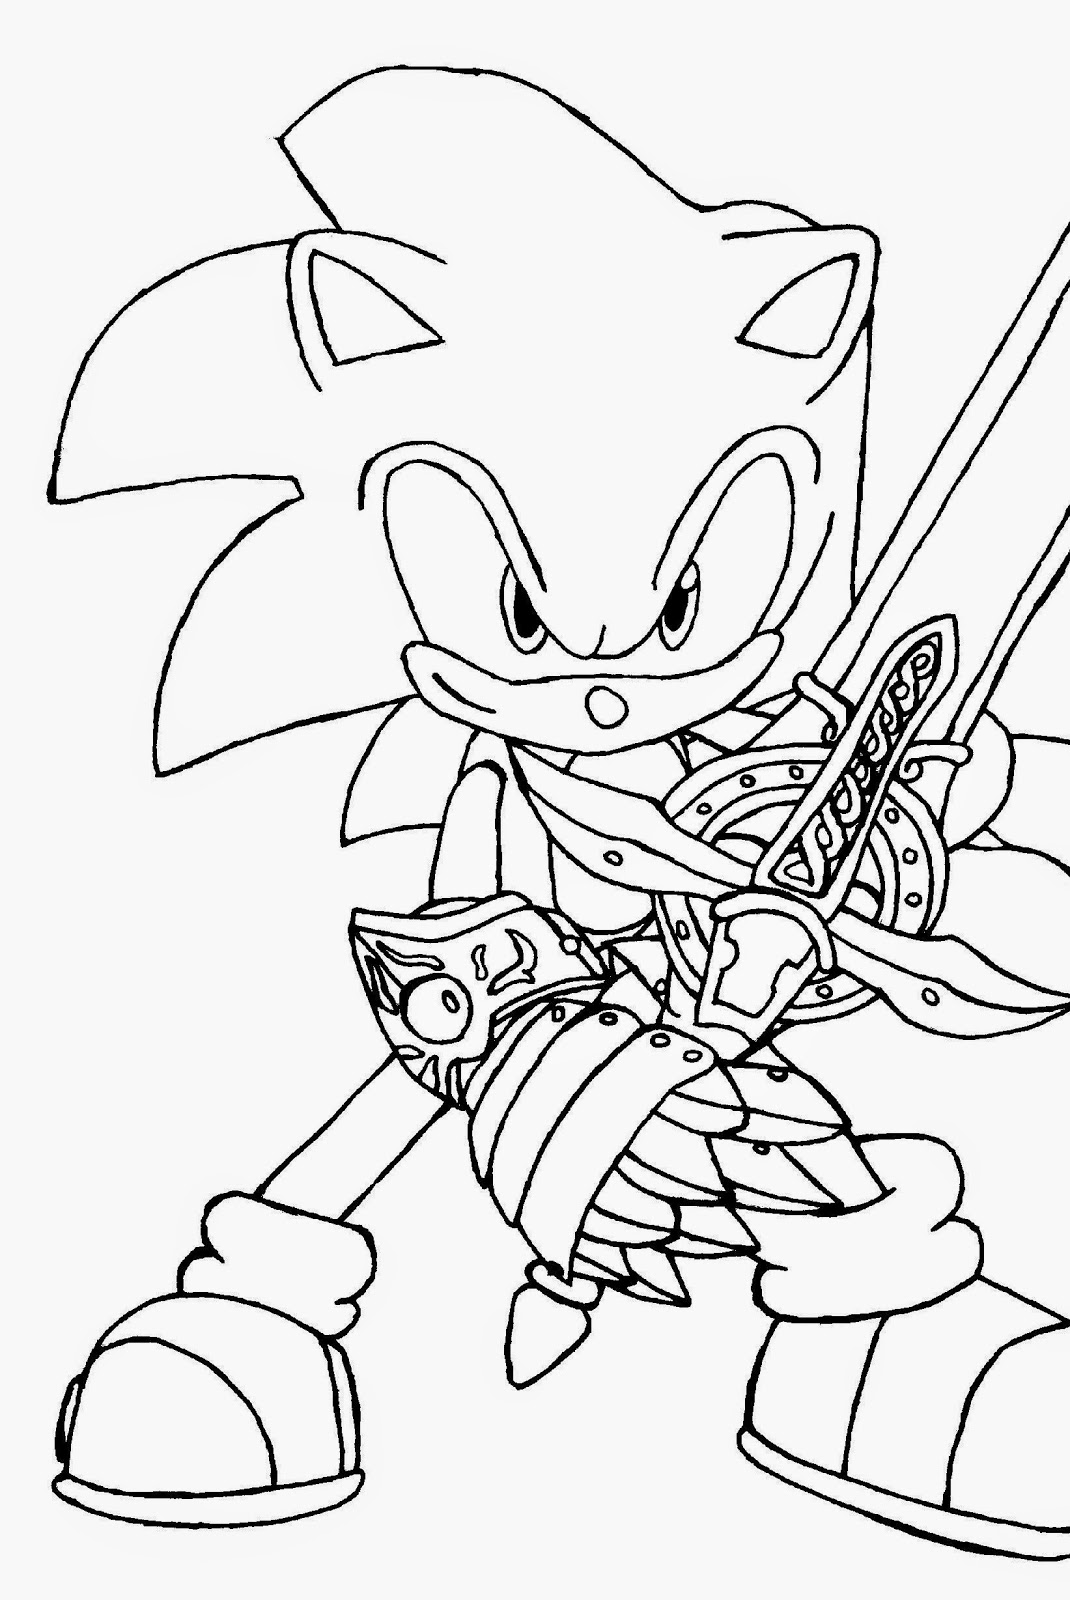 sonic printable printable sonic coloring pages for kids cool2bkids printable sonic